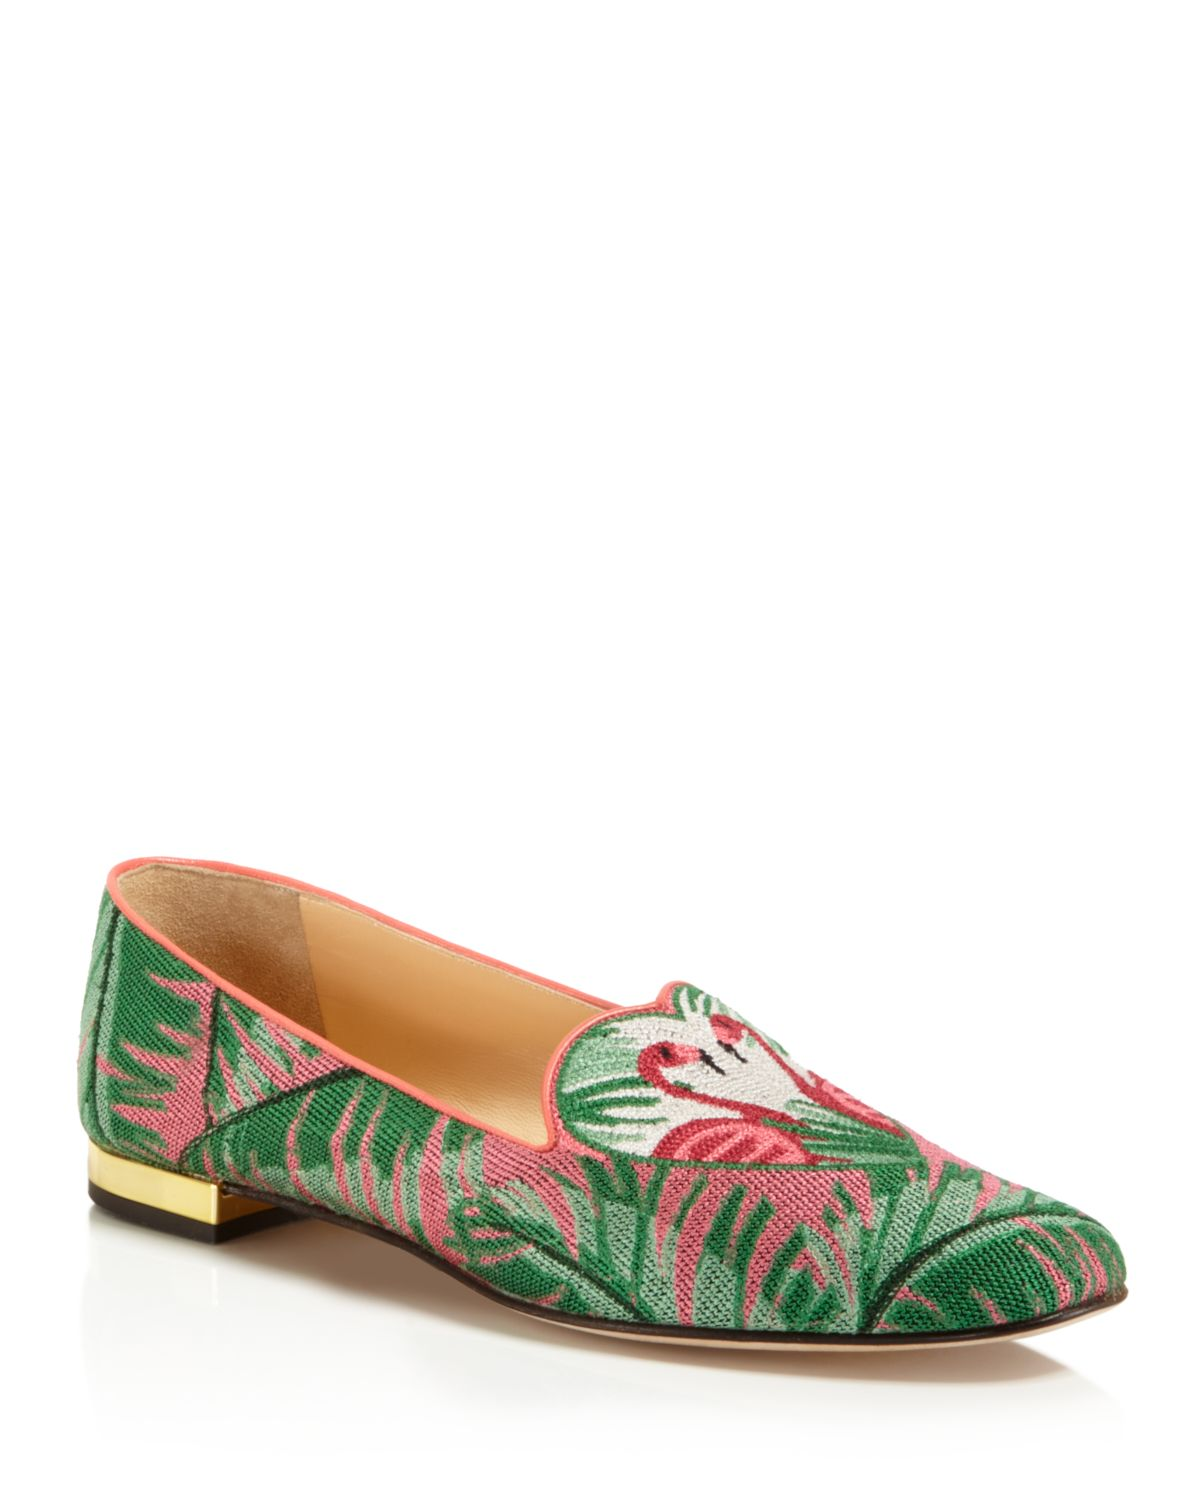 Charlotte Olympia Needlepoint flamingo slippers